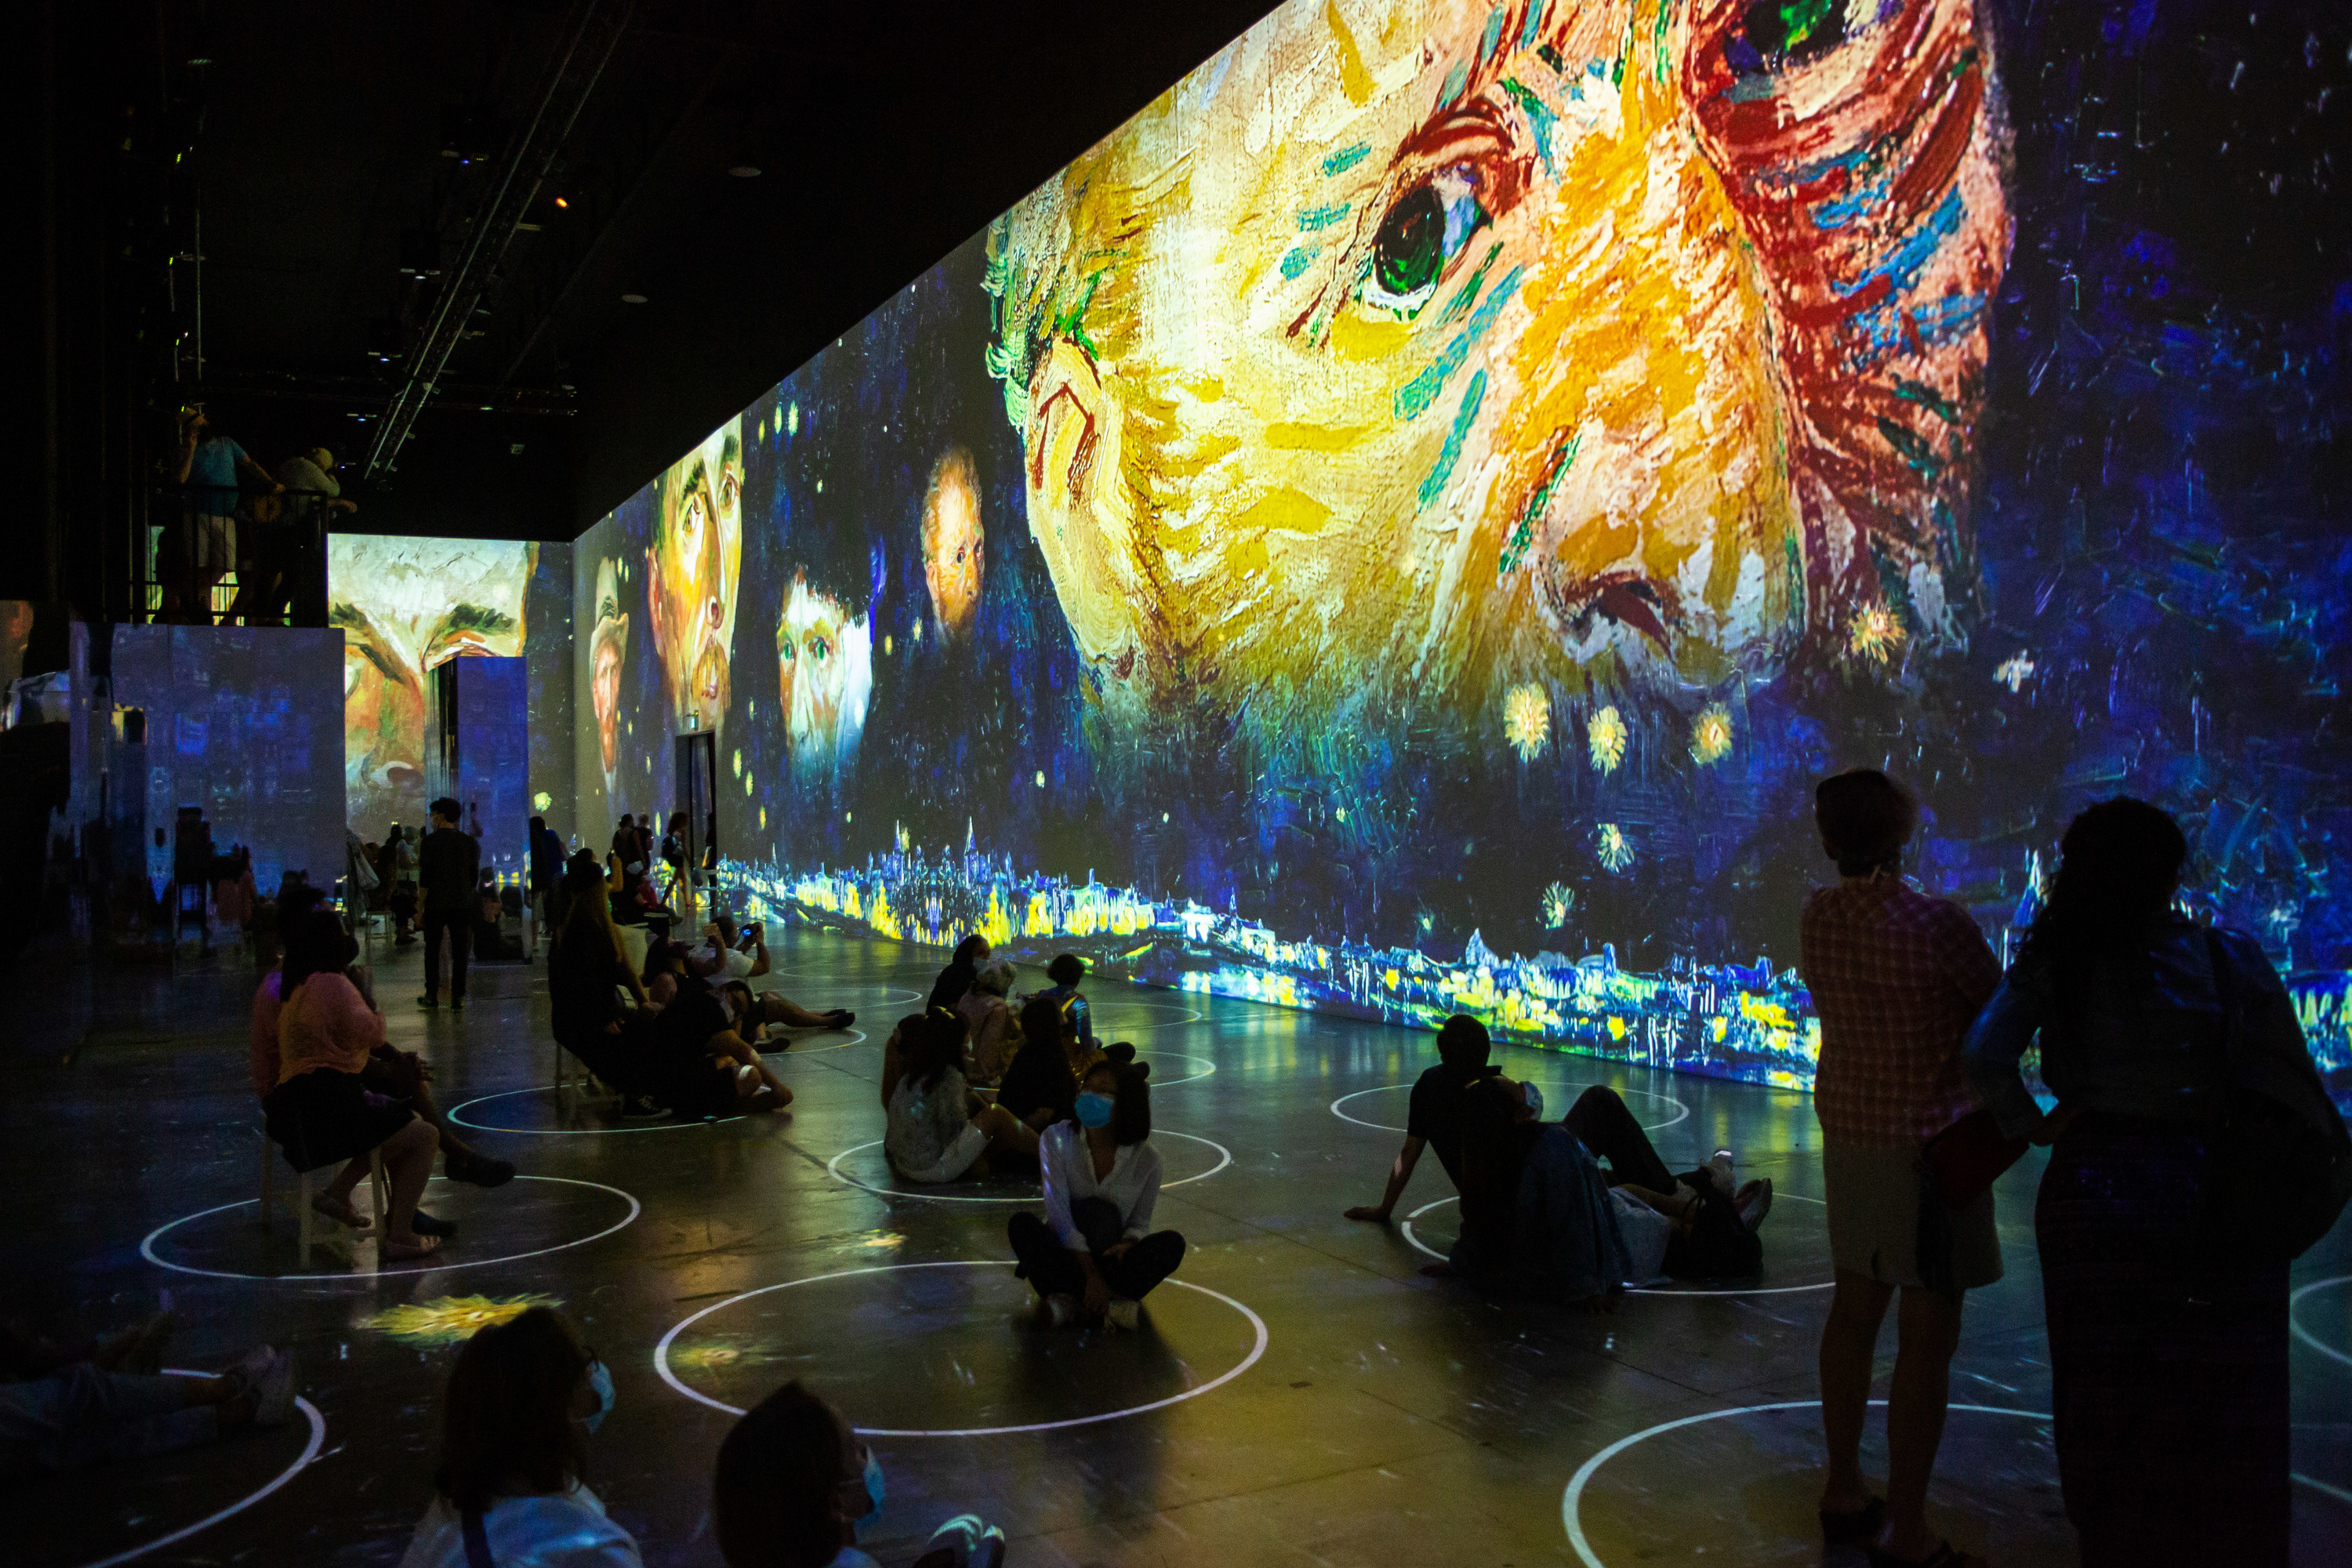 The 'Immersive Van Gogh' exhibition is coming to L.A. to devour your social feed